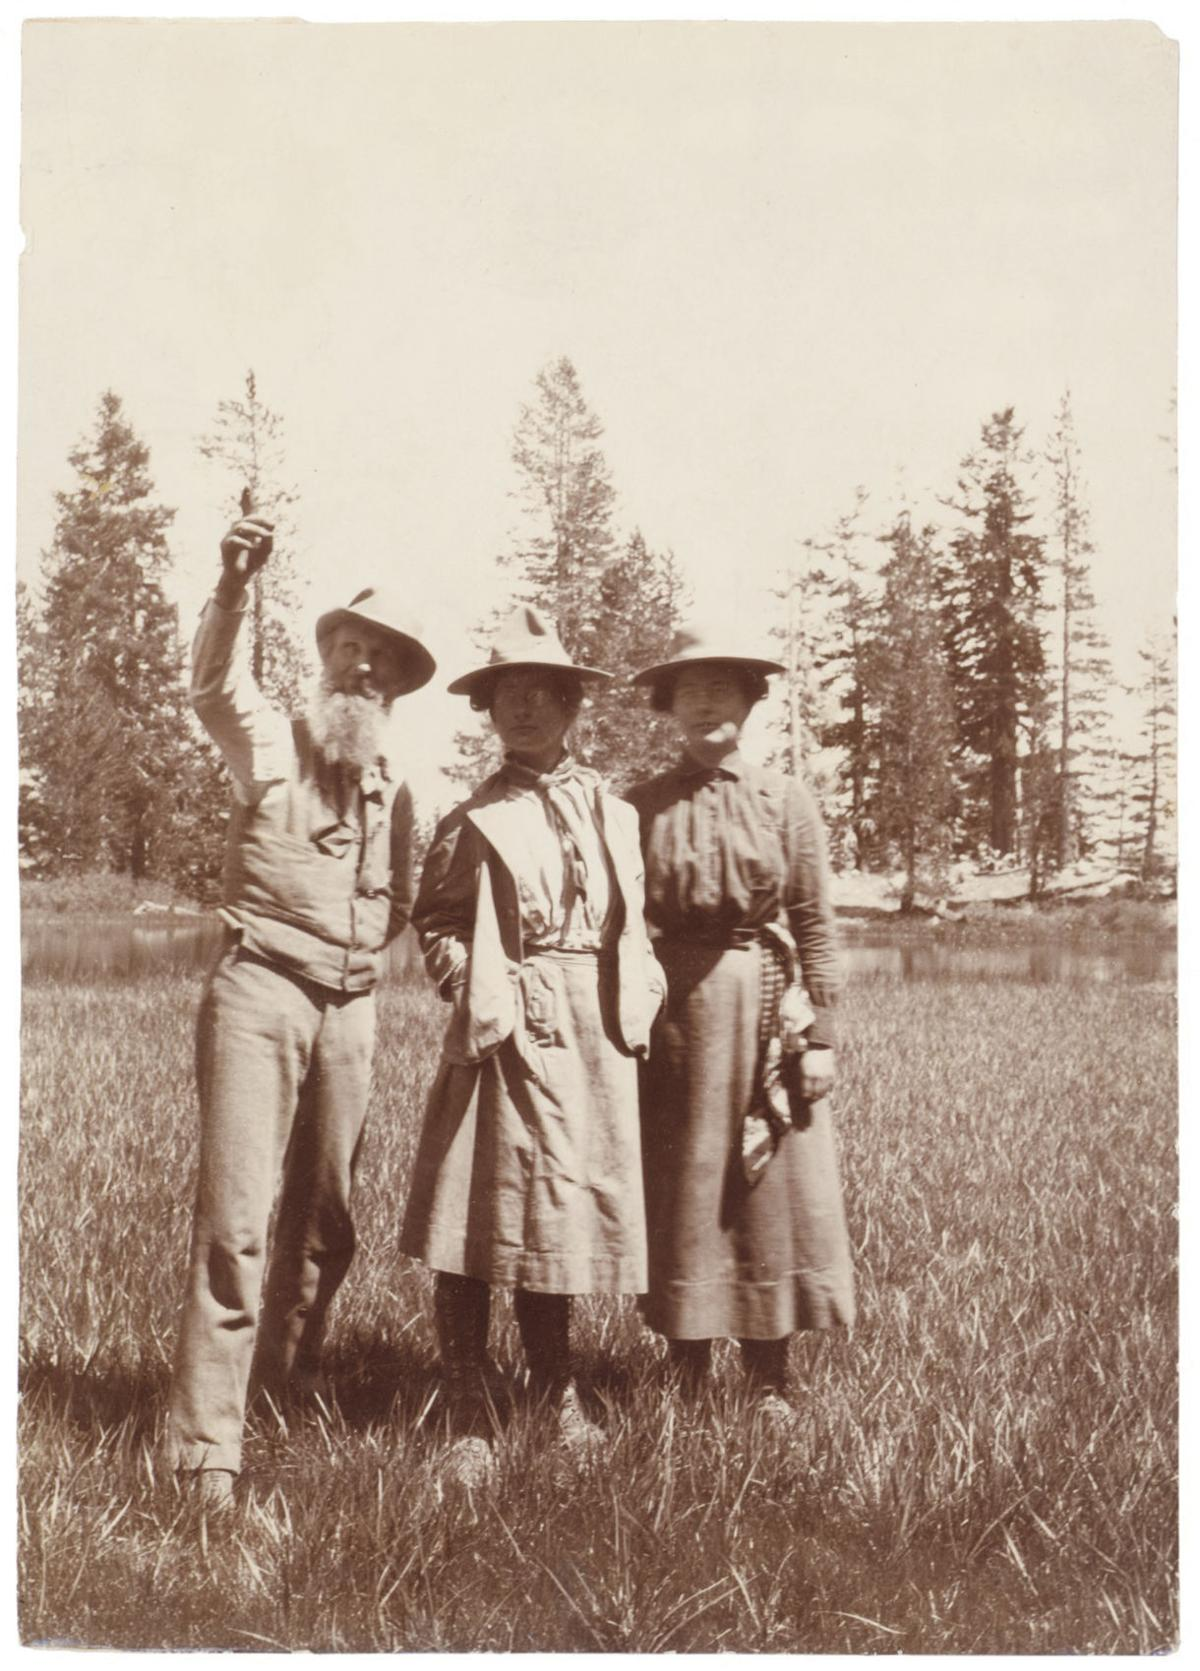 University of the Pacific to celebrate receiving thousands of John Muir papers